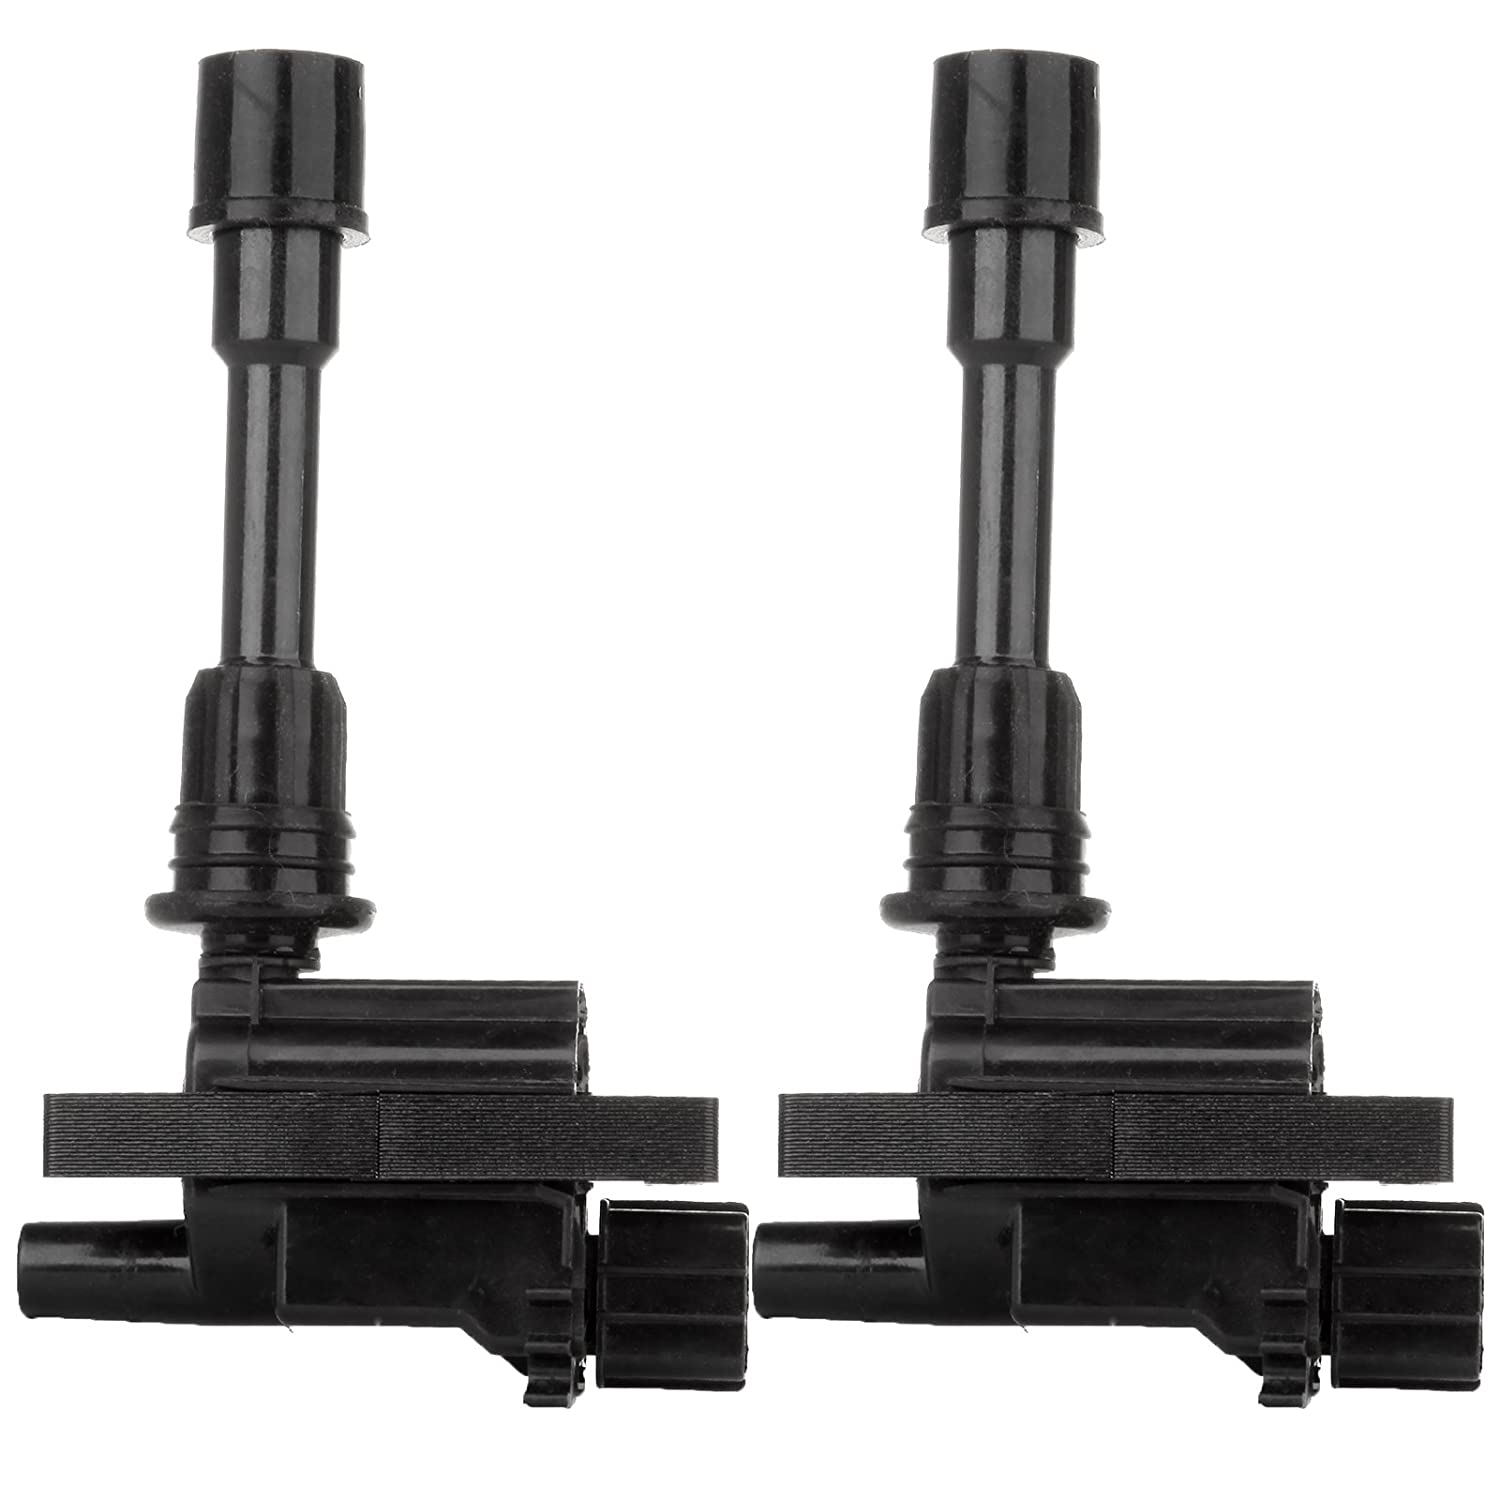 ECCPP Ignition Coils Pack of 2 Compatible with Mazda Protege Mazda Protege 5 2001-2003 Replacement for UF407 5C1208 C1340